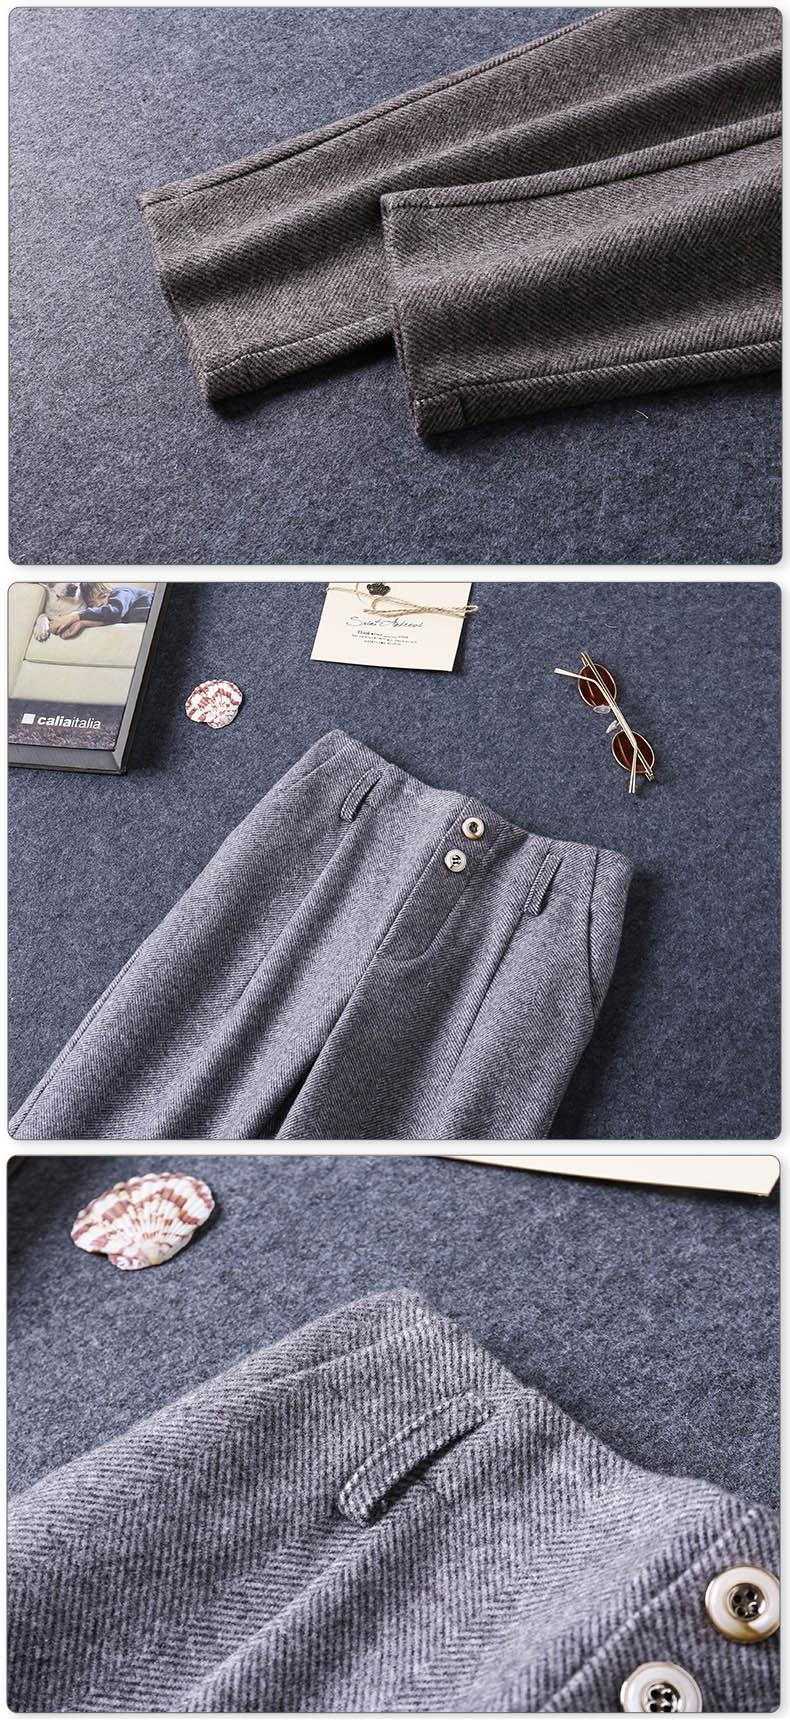 Pants For Girls 2020 Autumn Winter Casual Woolen Children's Trousers For Girls High Waist Pants New Kids Casual Suit Pants K136